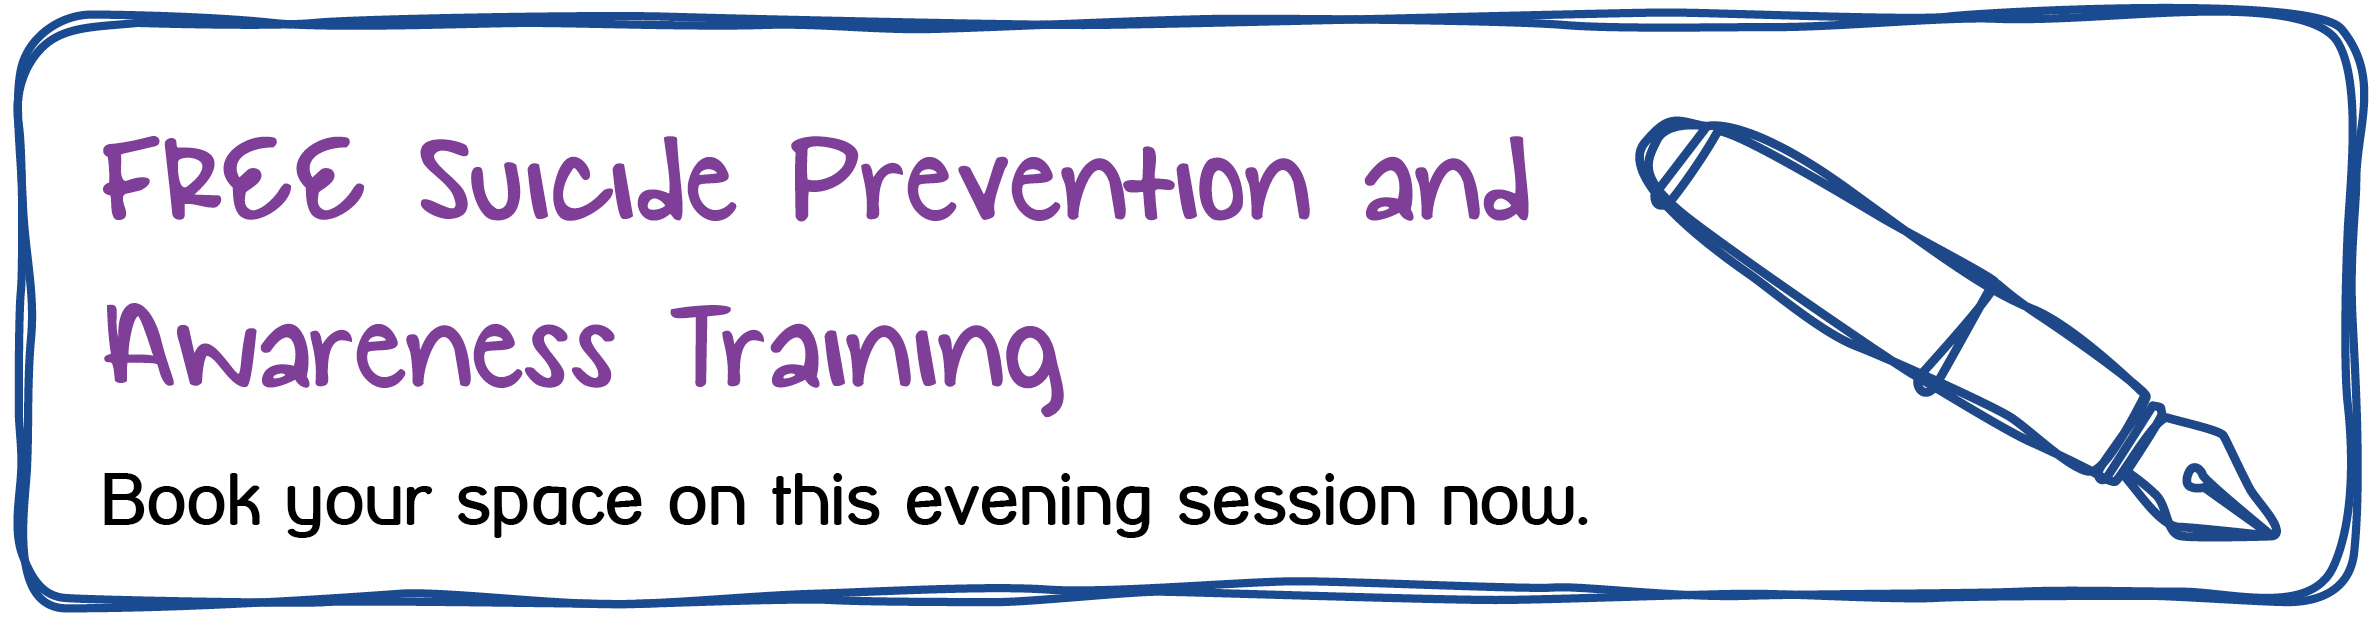 FREE Suicide Prevention and Awareness Training Book your space on this evening session now.